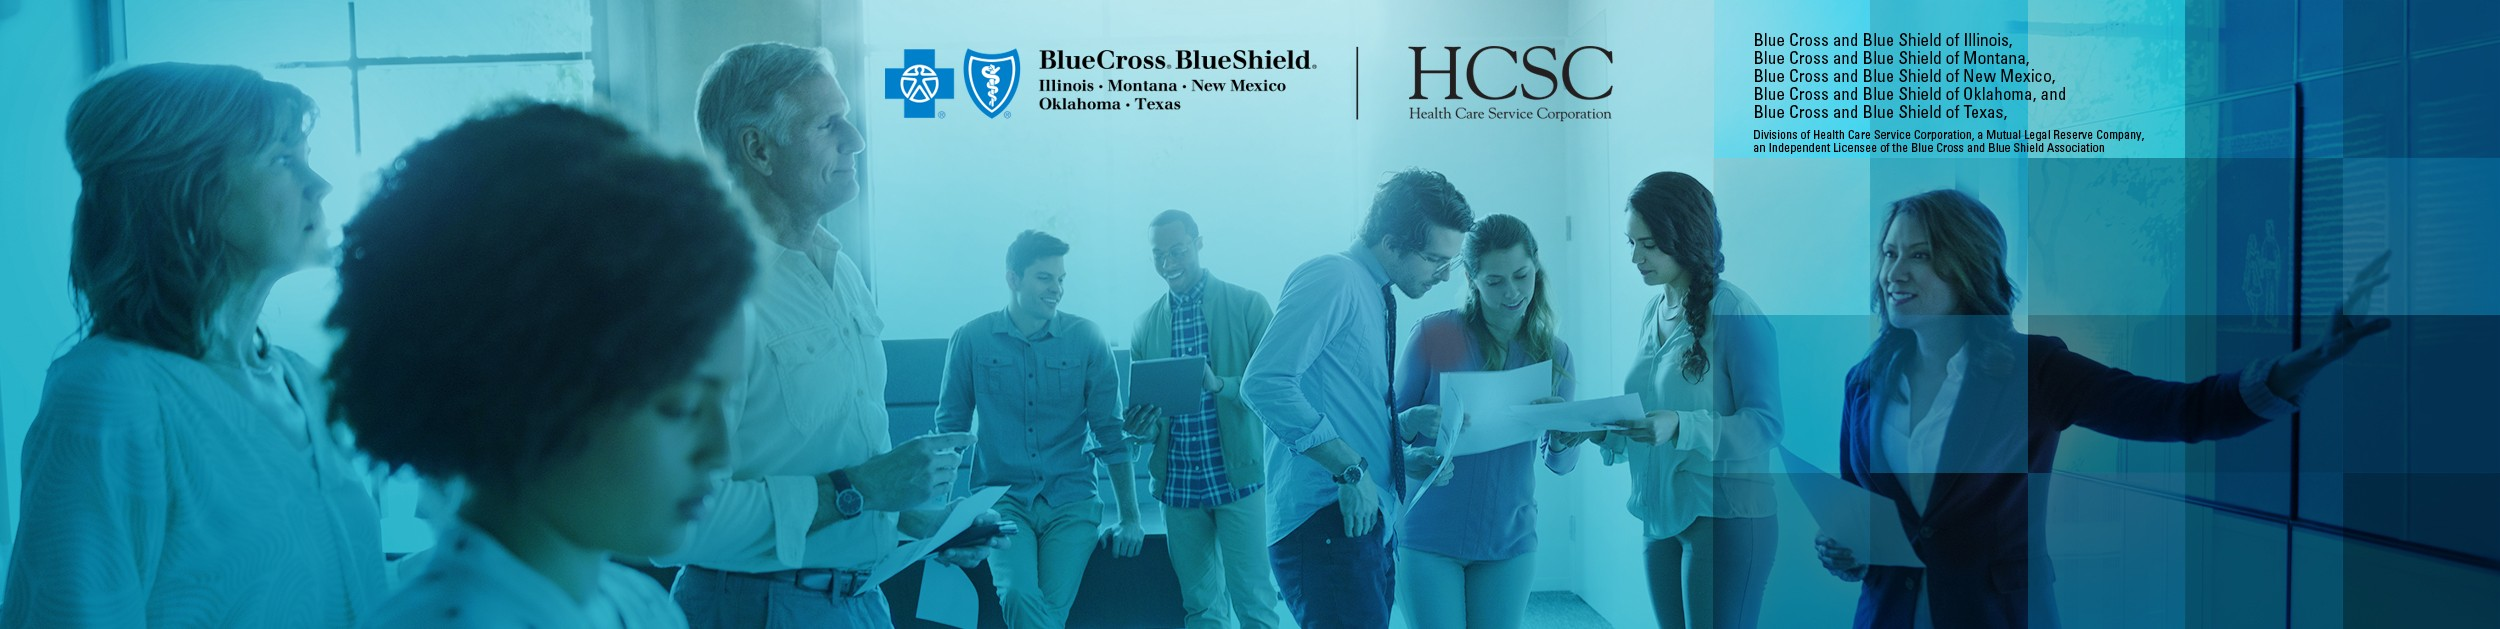 Blue Cross and Blue Shield of Illinois, Montana, New Mexico